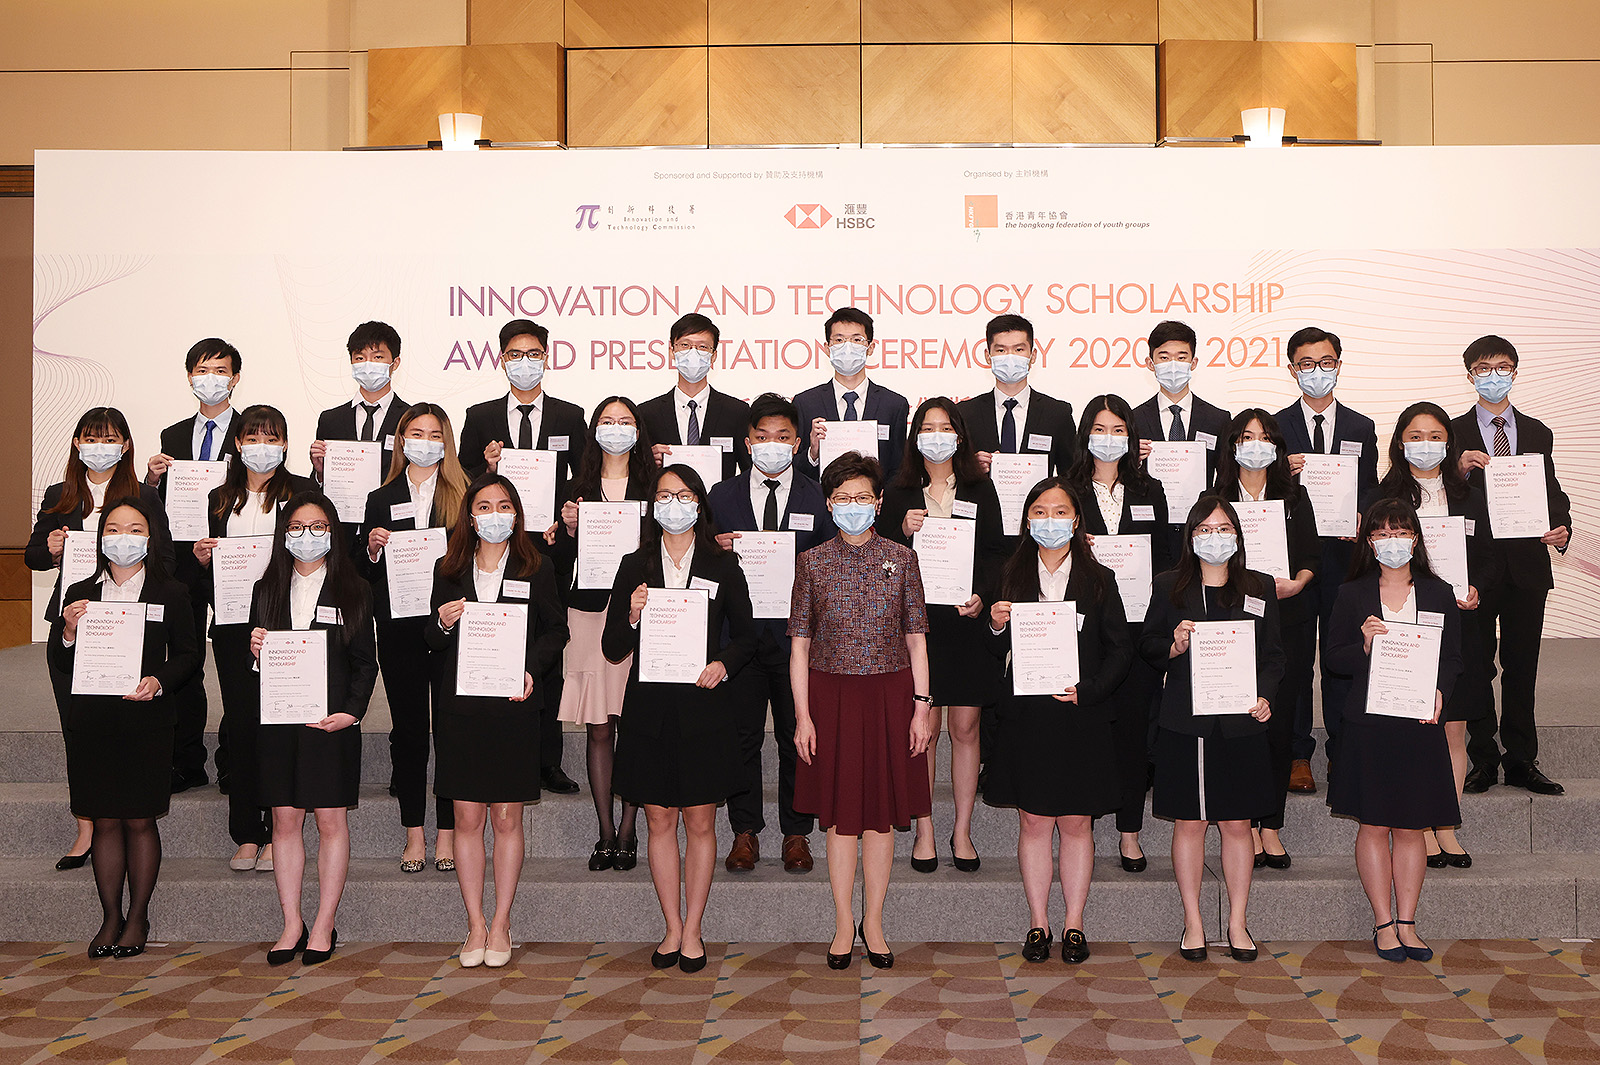 The four CityU awardees, Monica Chan and Harvey Ng (2nd and 5th from left in 2nd row); and Andy Wong and Xavier Yeung (2nd and 3rd from left in 3rd row) received their certificates from the Chief Executive of the HKSAR, Mrs Carrie Lam Cheng Yuet-ngor, at the Innovation and Technology Scholarship Award Presentation Ceremony on 21 June.